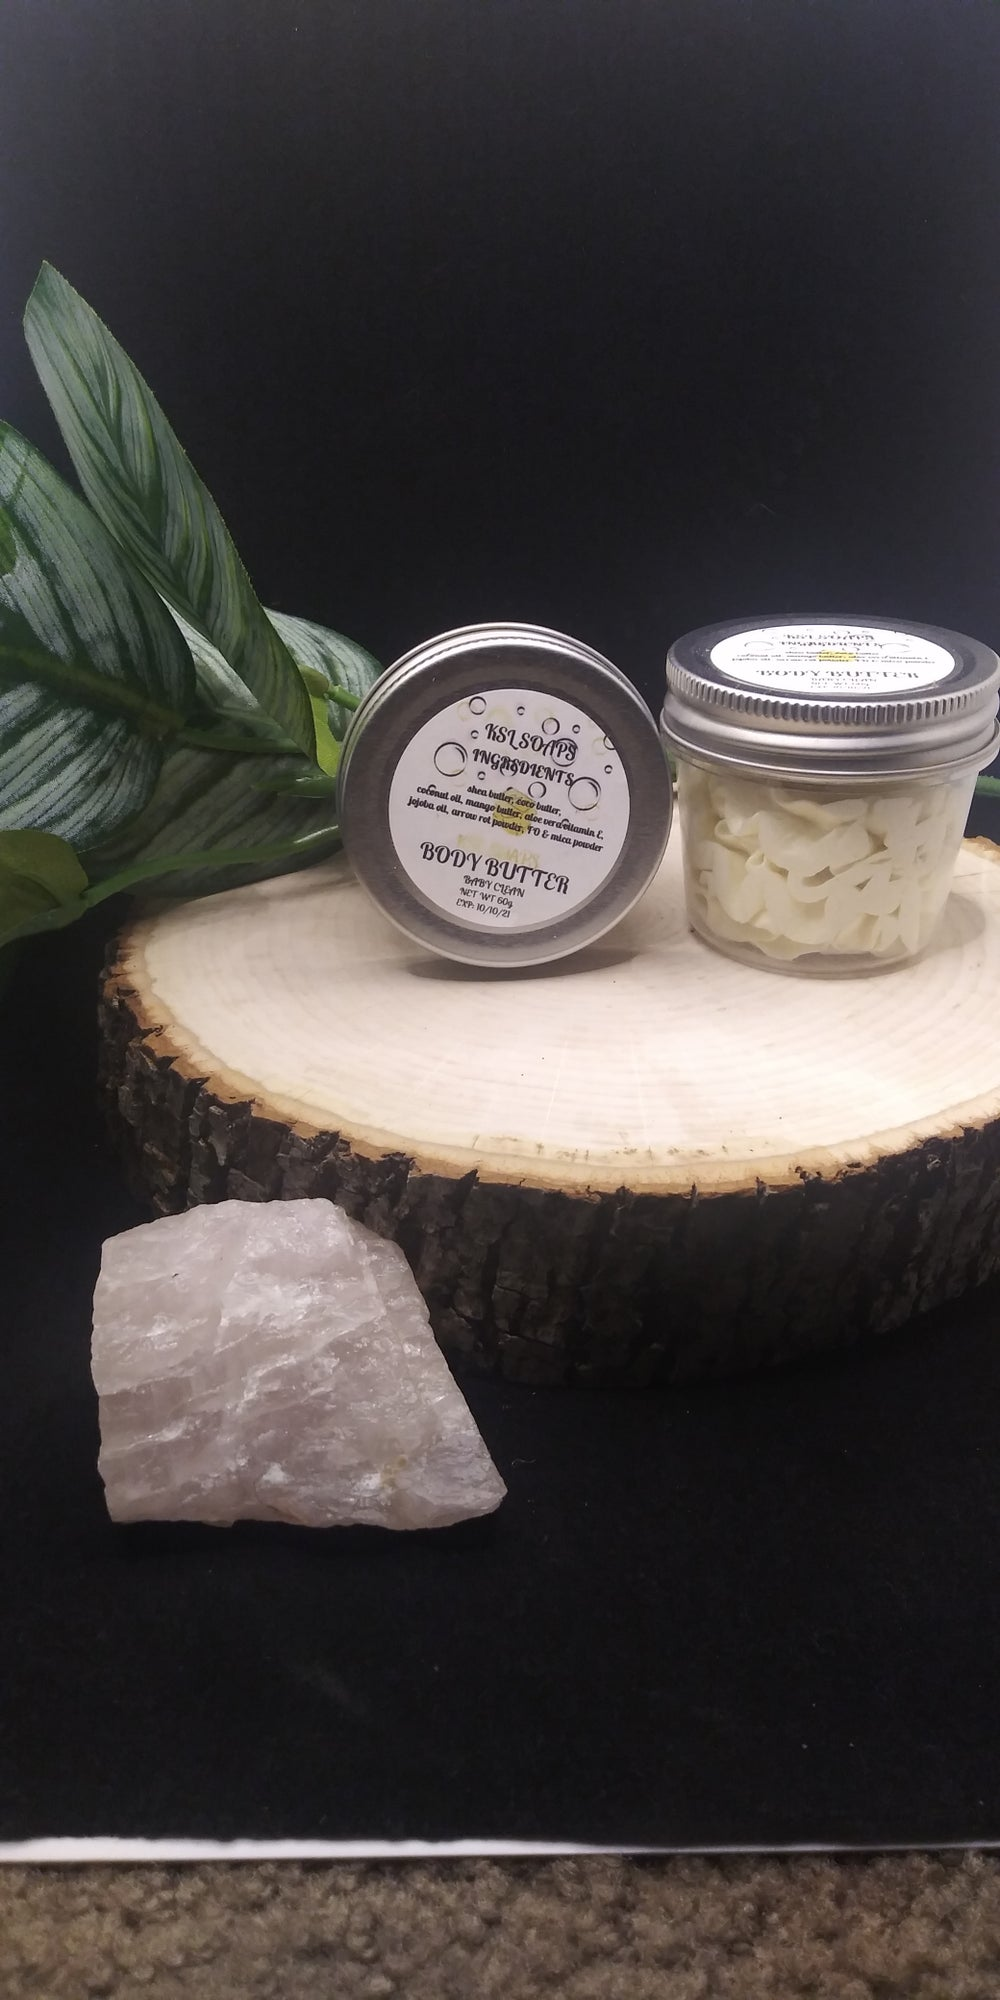 BABY CLEAN BODY BUTTER